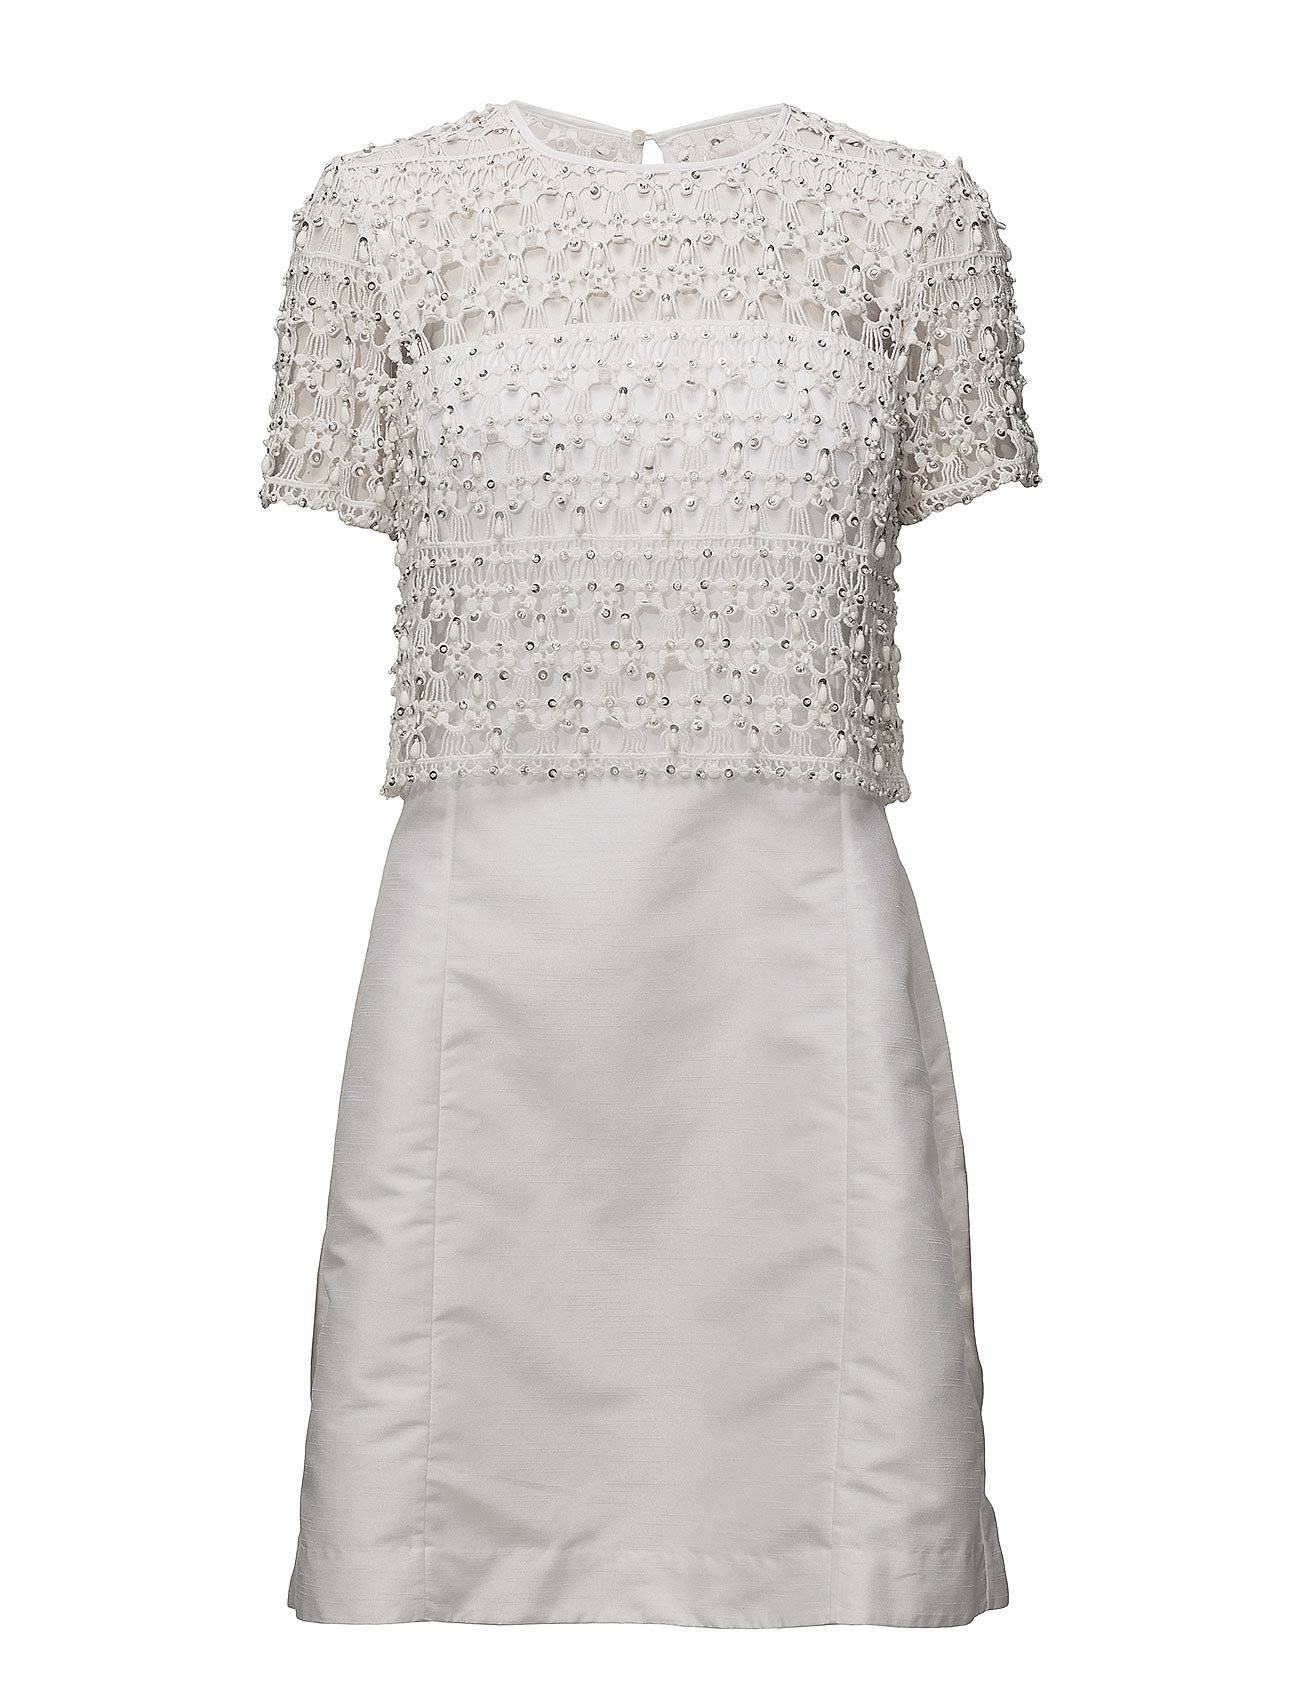 French Connection Consenza Sparkle Embellished Wedding Dress